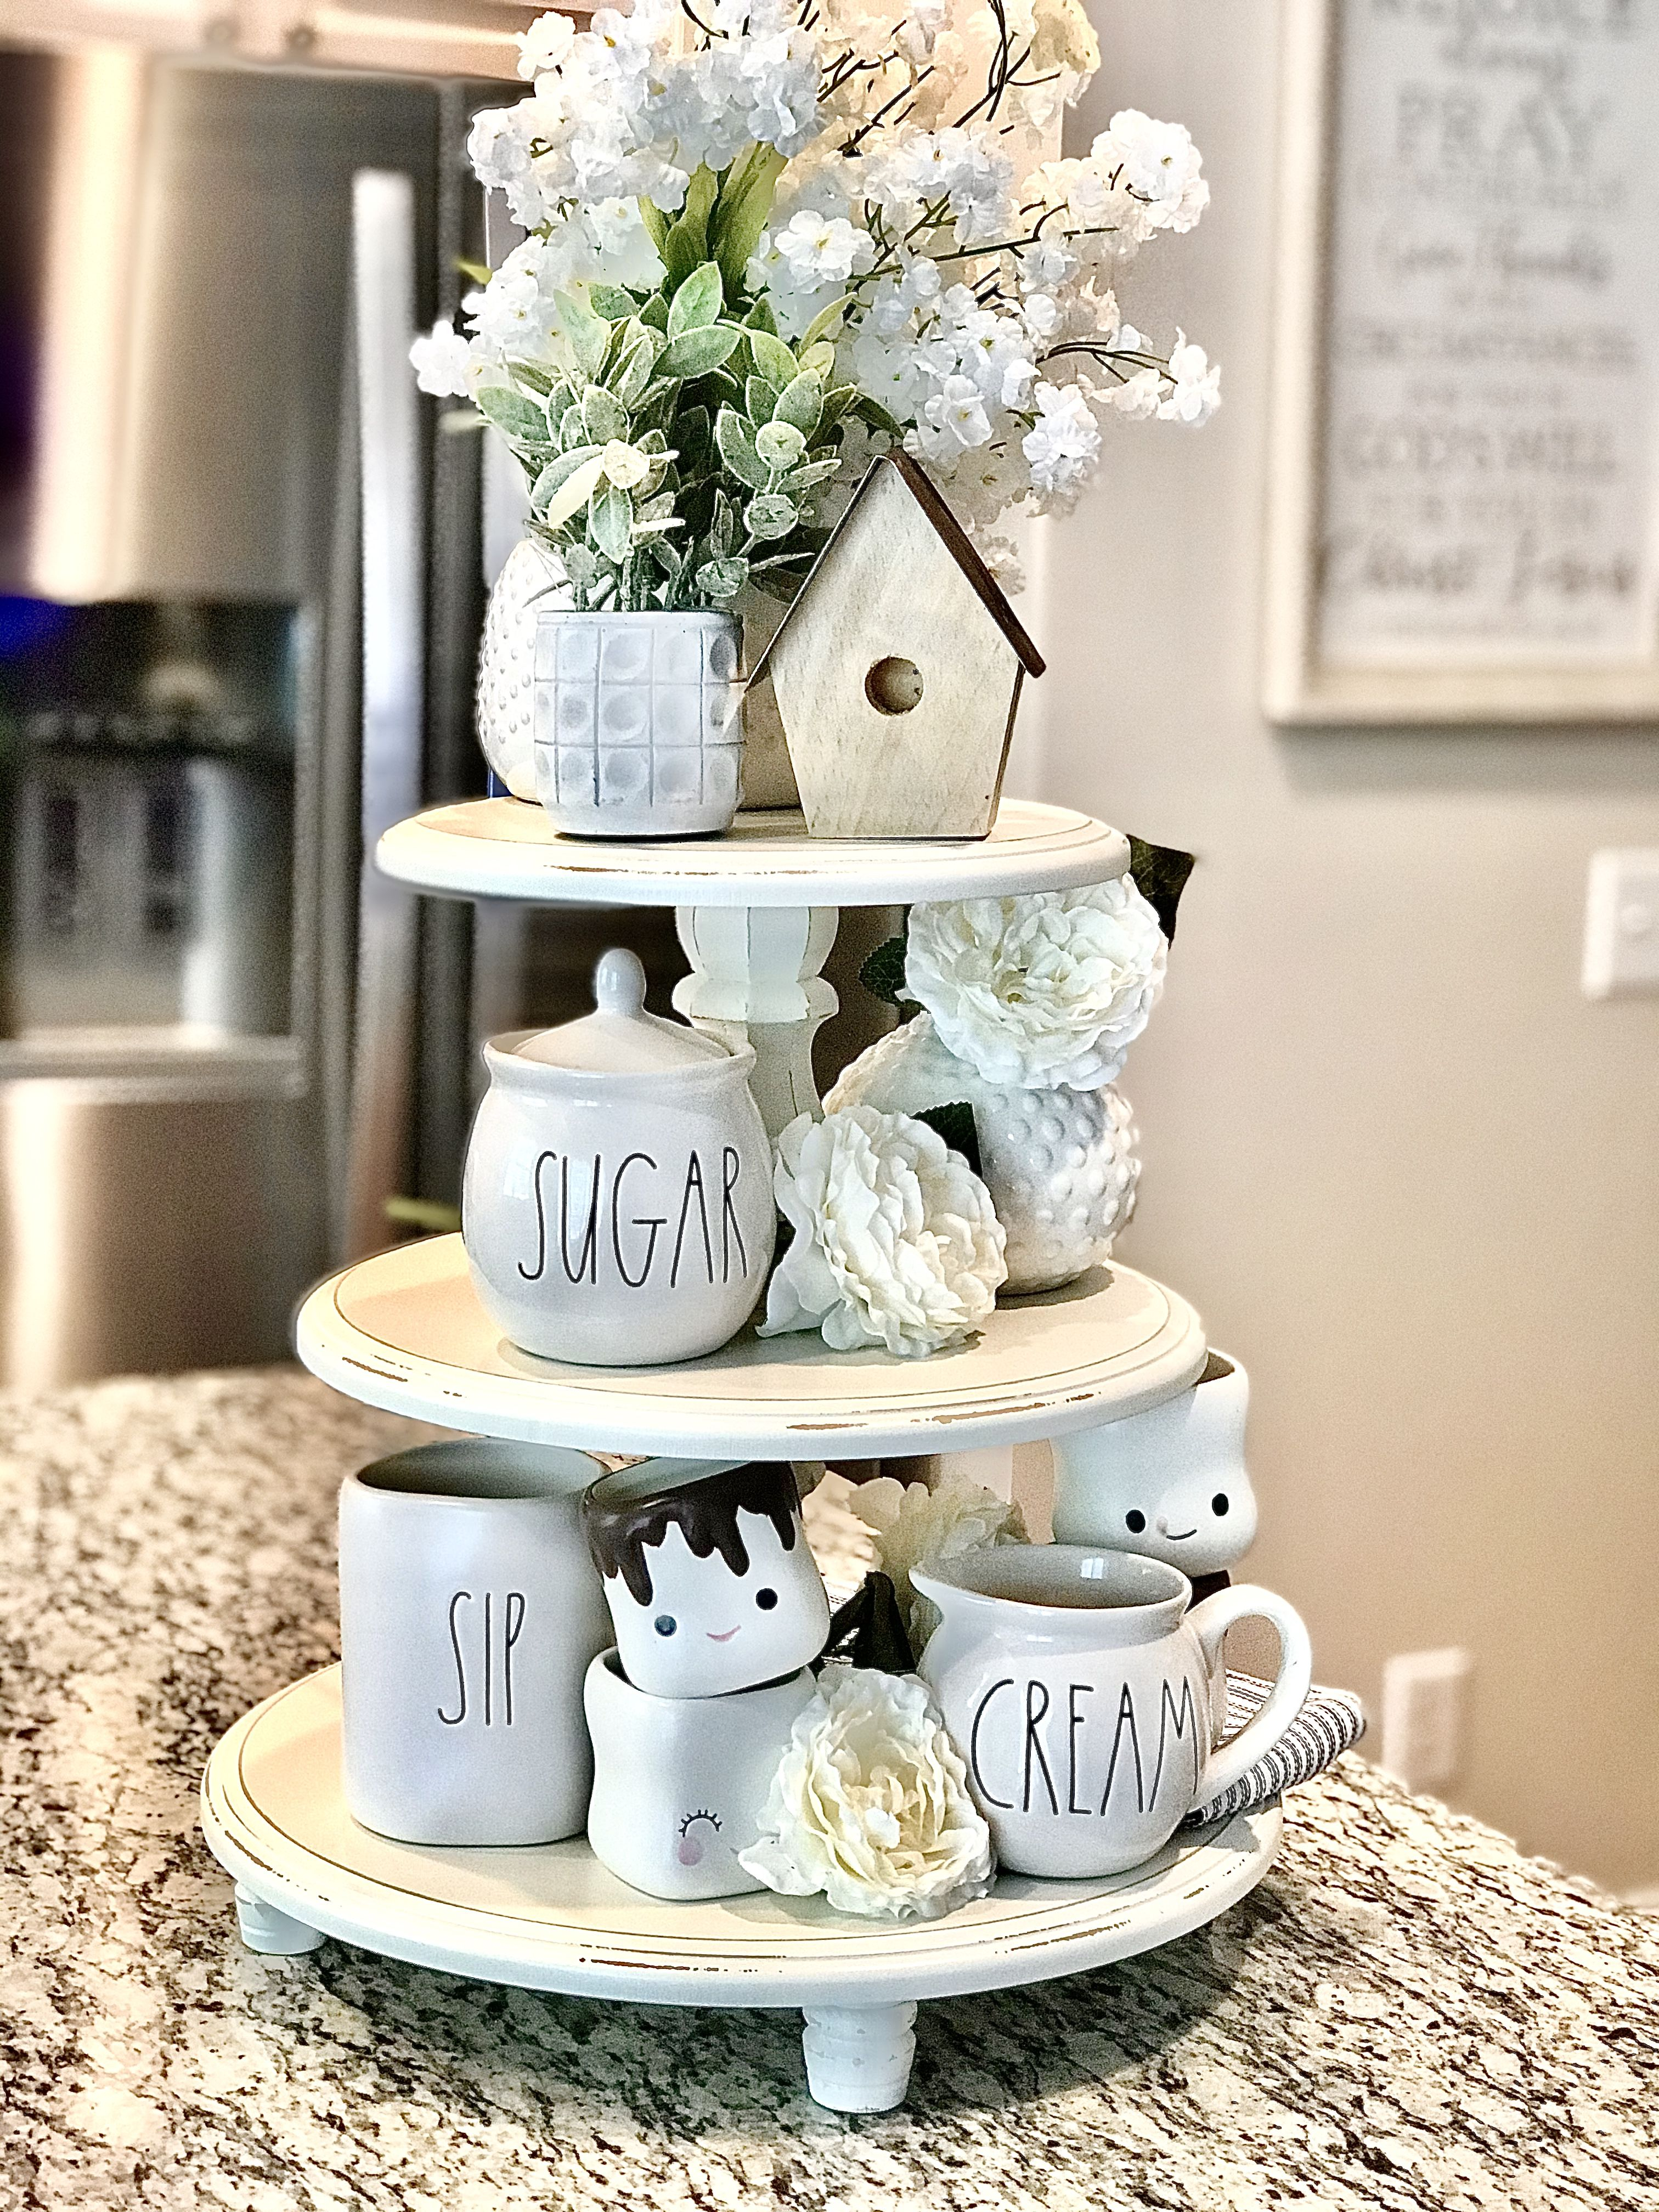 Tier Tray Wooden Tier Tray You Pick Color Tray Stand Riser Tiered Stand Centerpiece Rustic Farmhouse Kitchen Mug Riser In 2020 Decor Spring Home Decor Farmhouse Decor